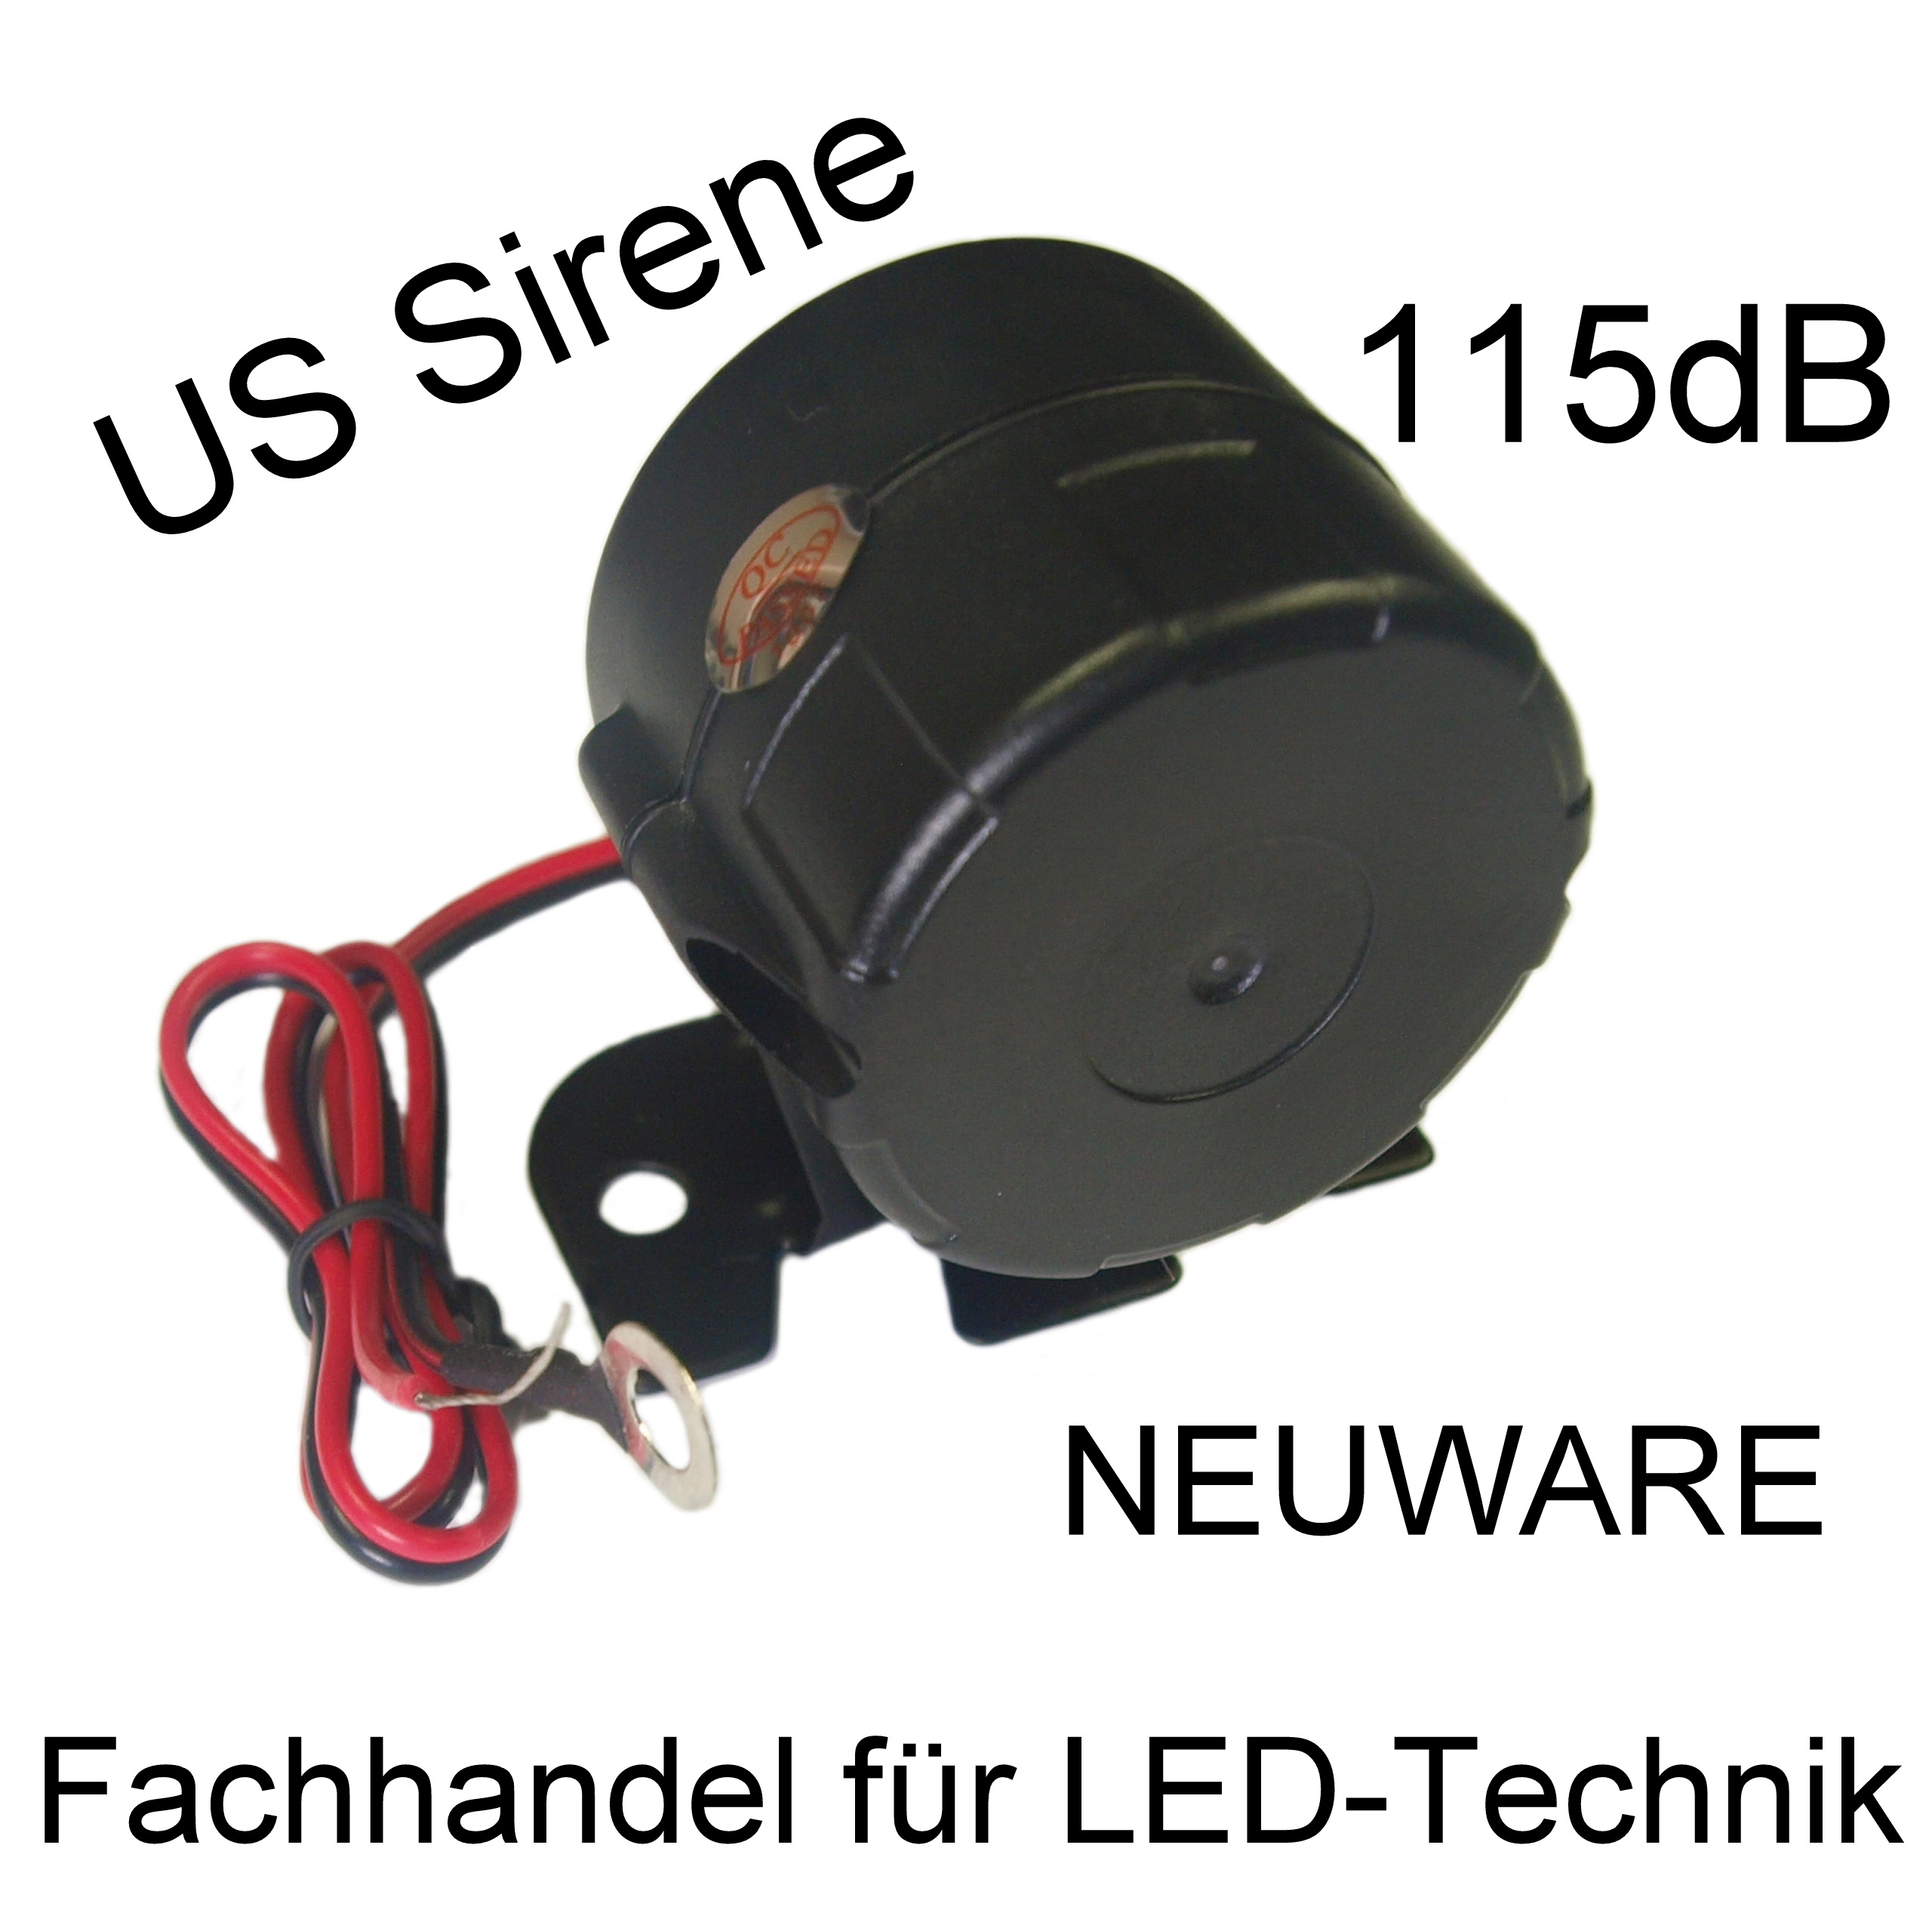 us police sirene 20 watt power 115 db neuware extrem ebay. Black Bedroom Furniture Sets. Home Design Ideas